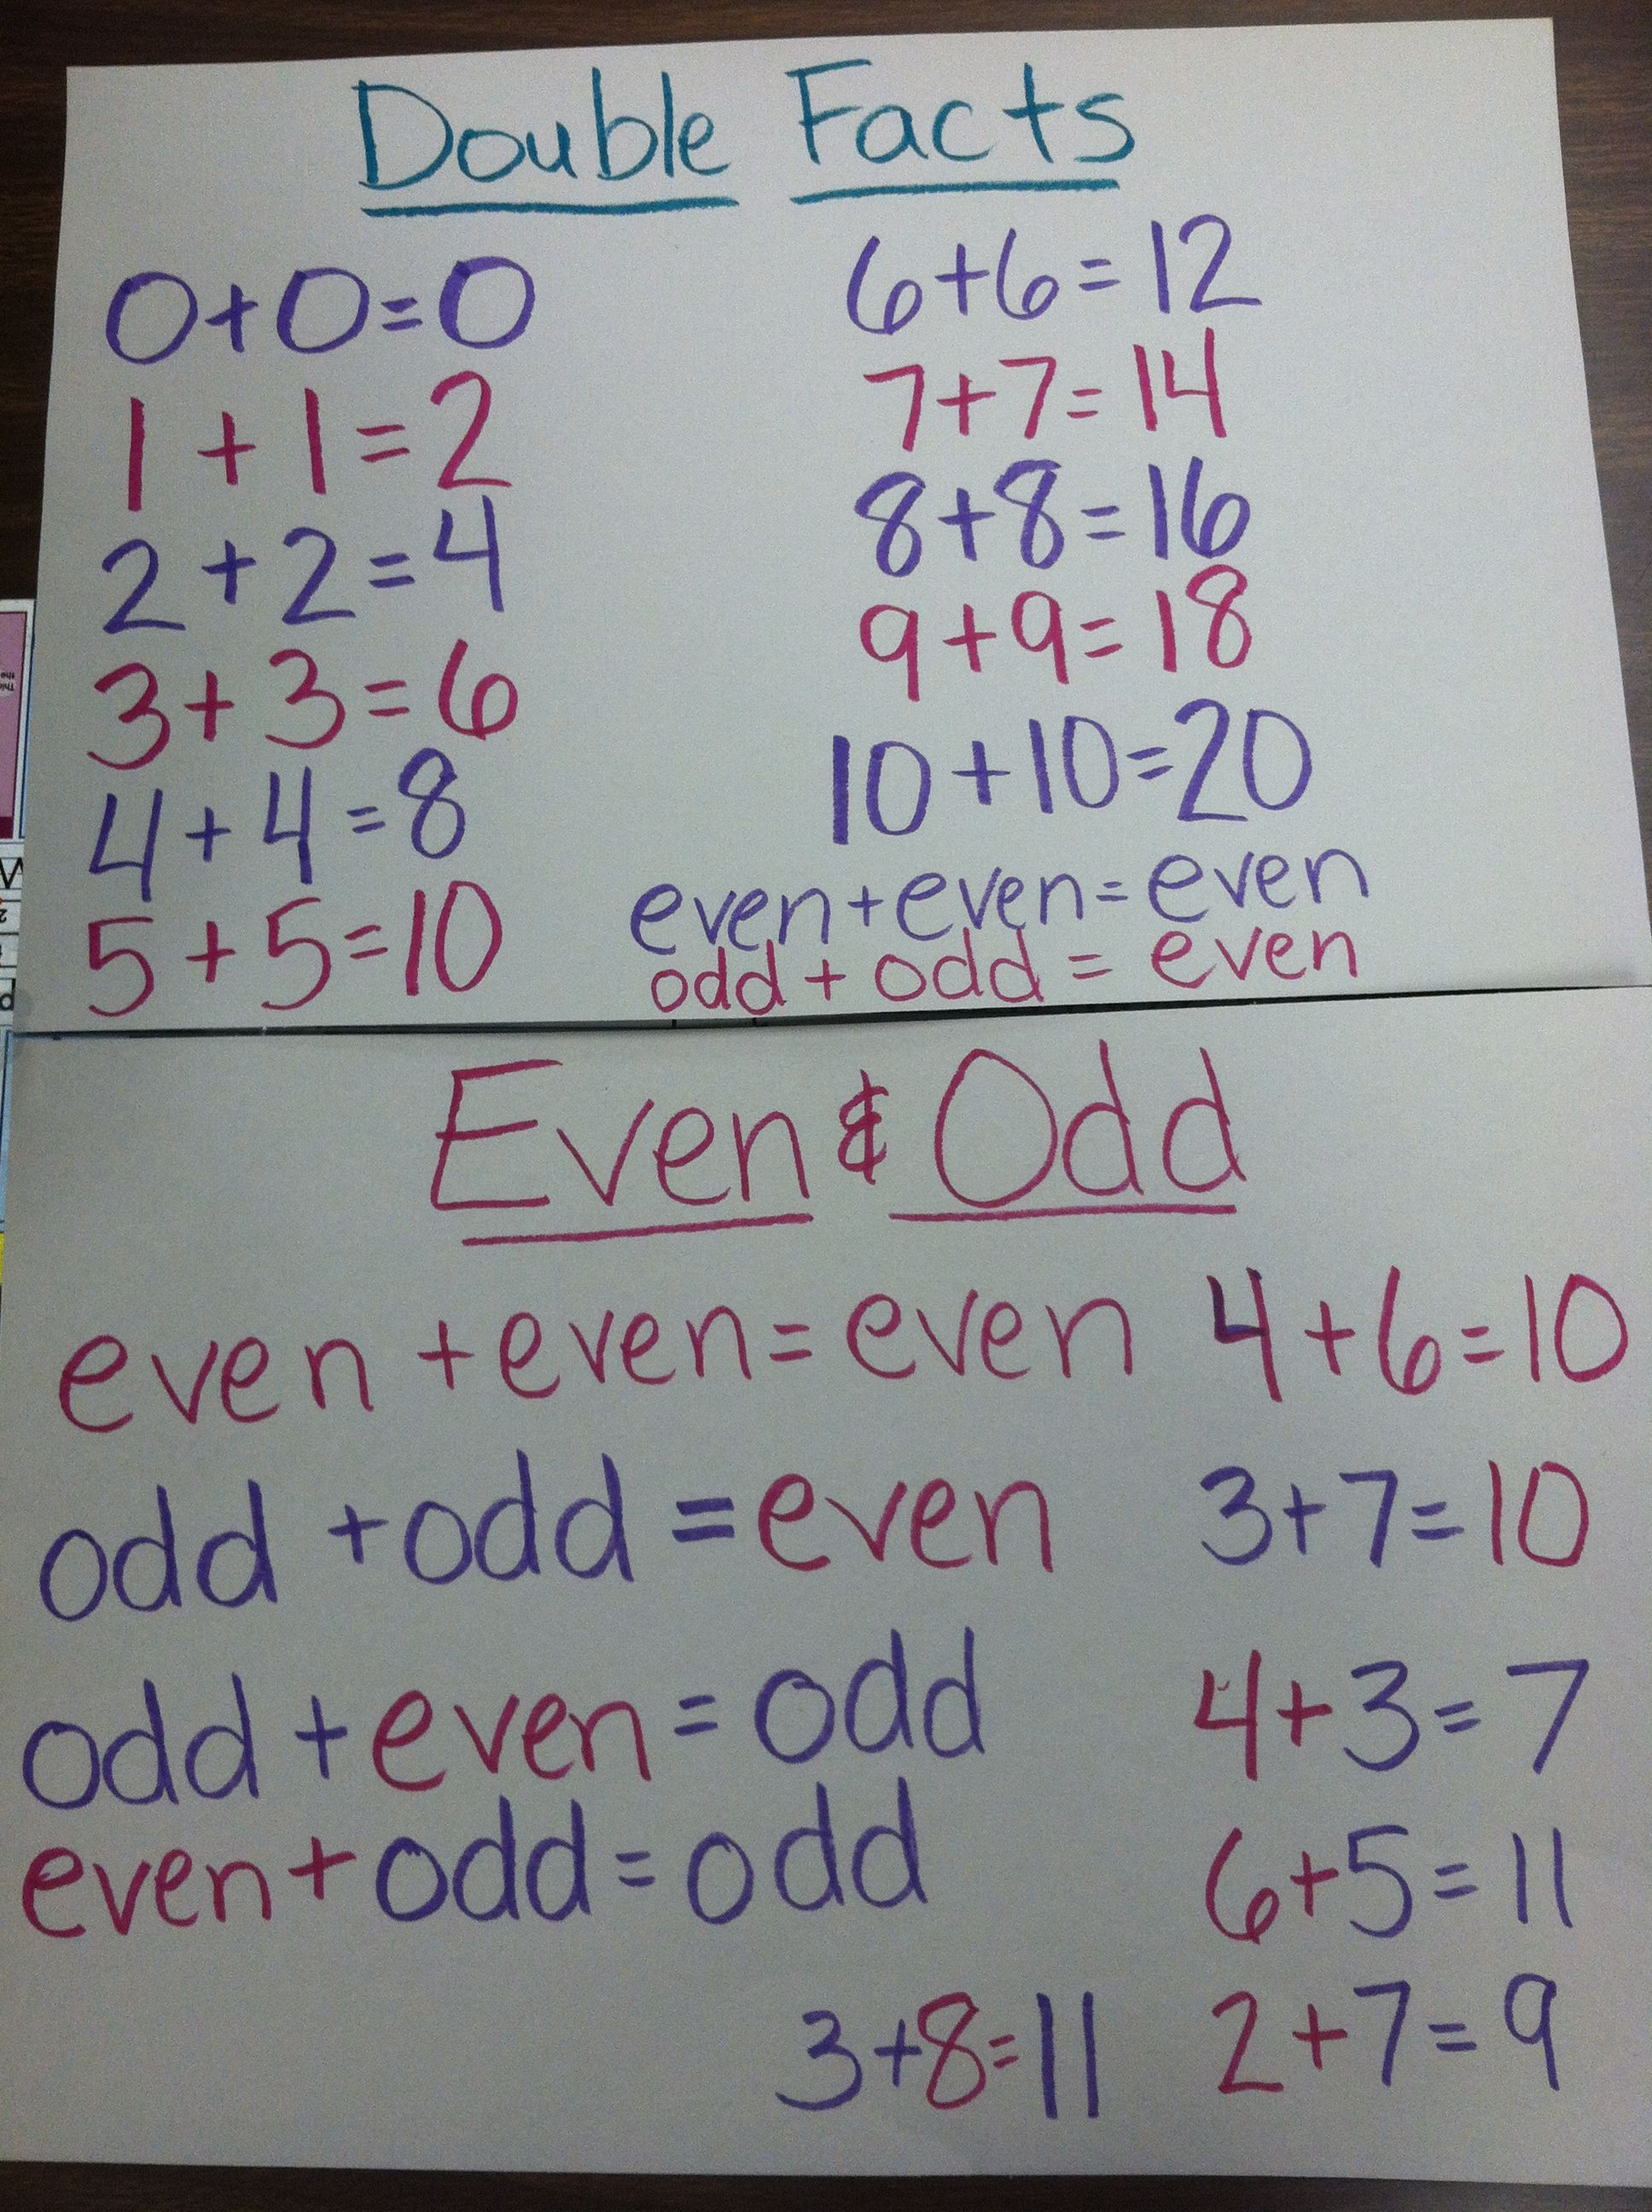 medium resolution of Double facts with even and odd connections.   Math classroom